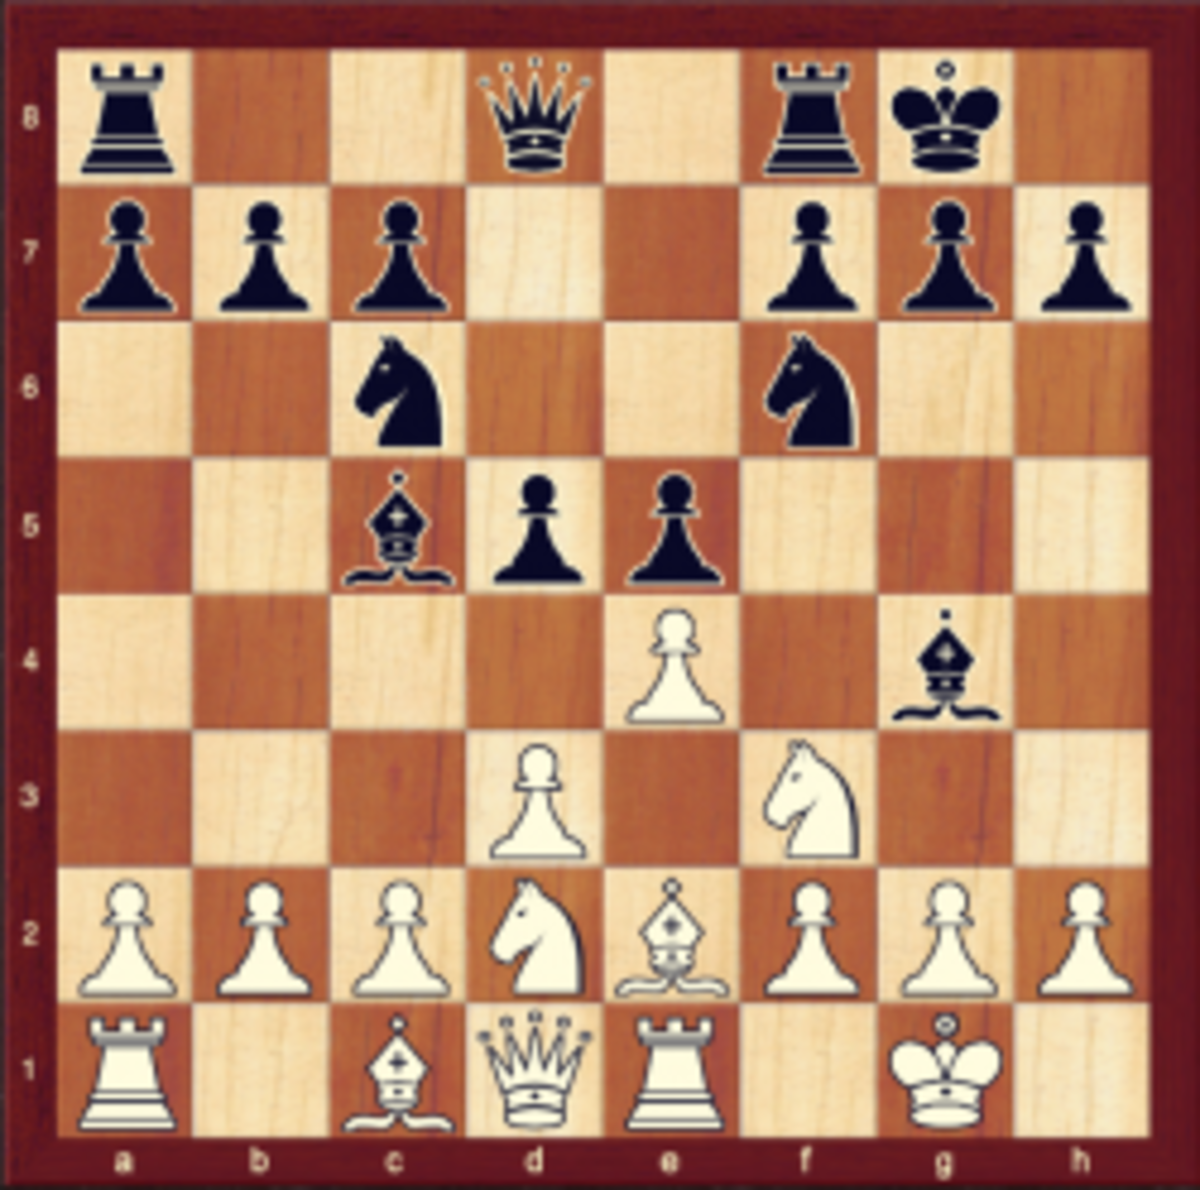 The position after 7..Bg4